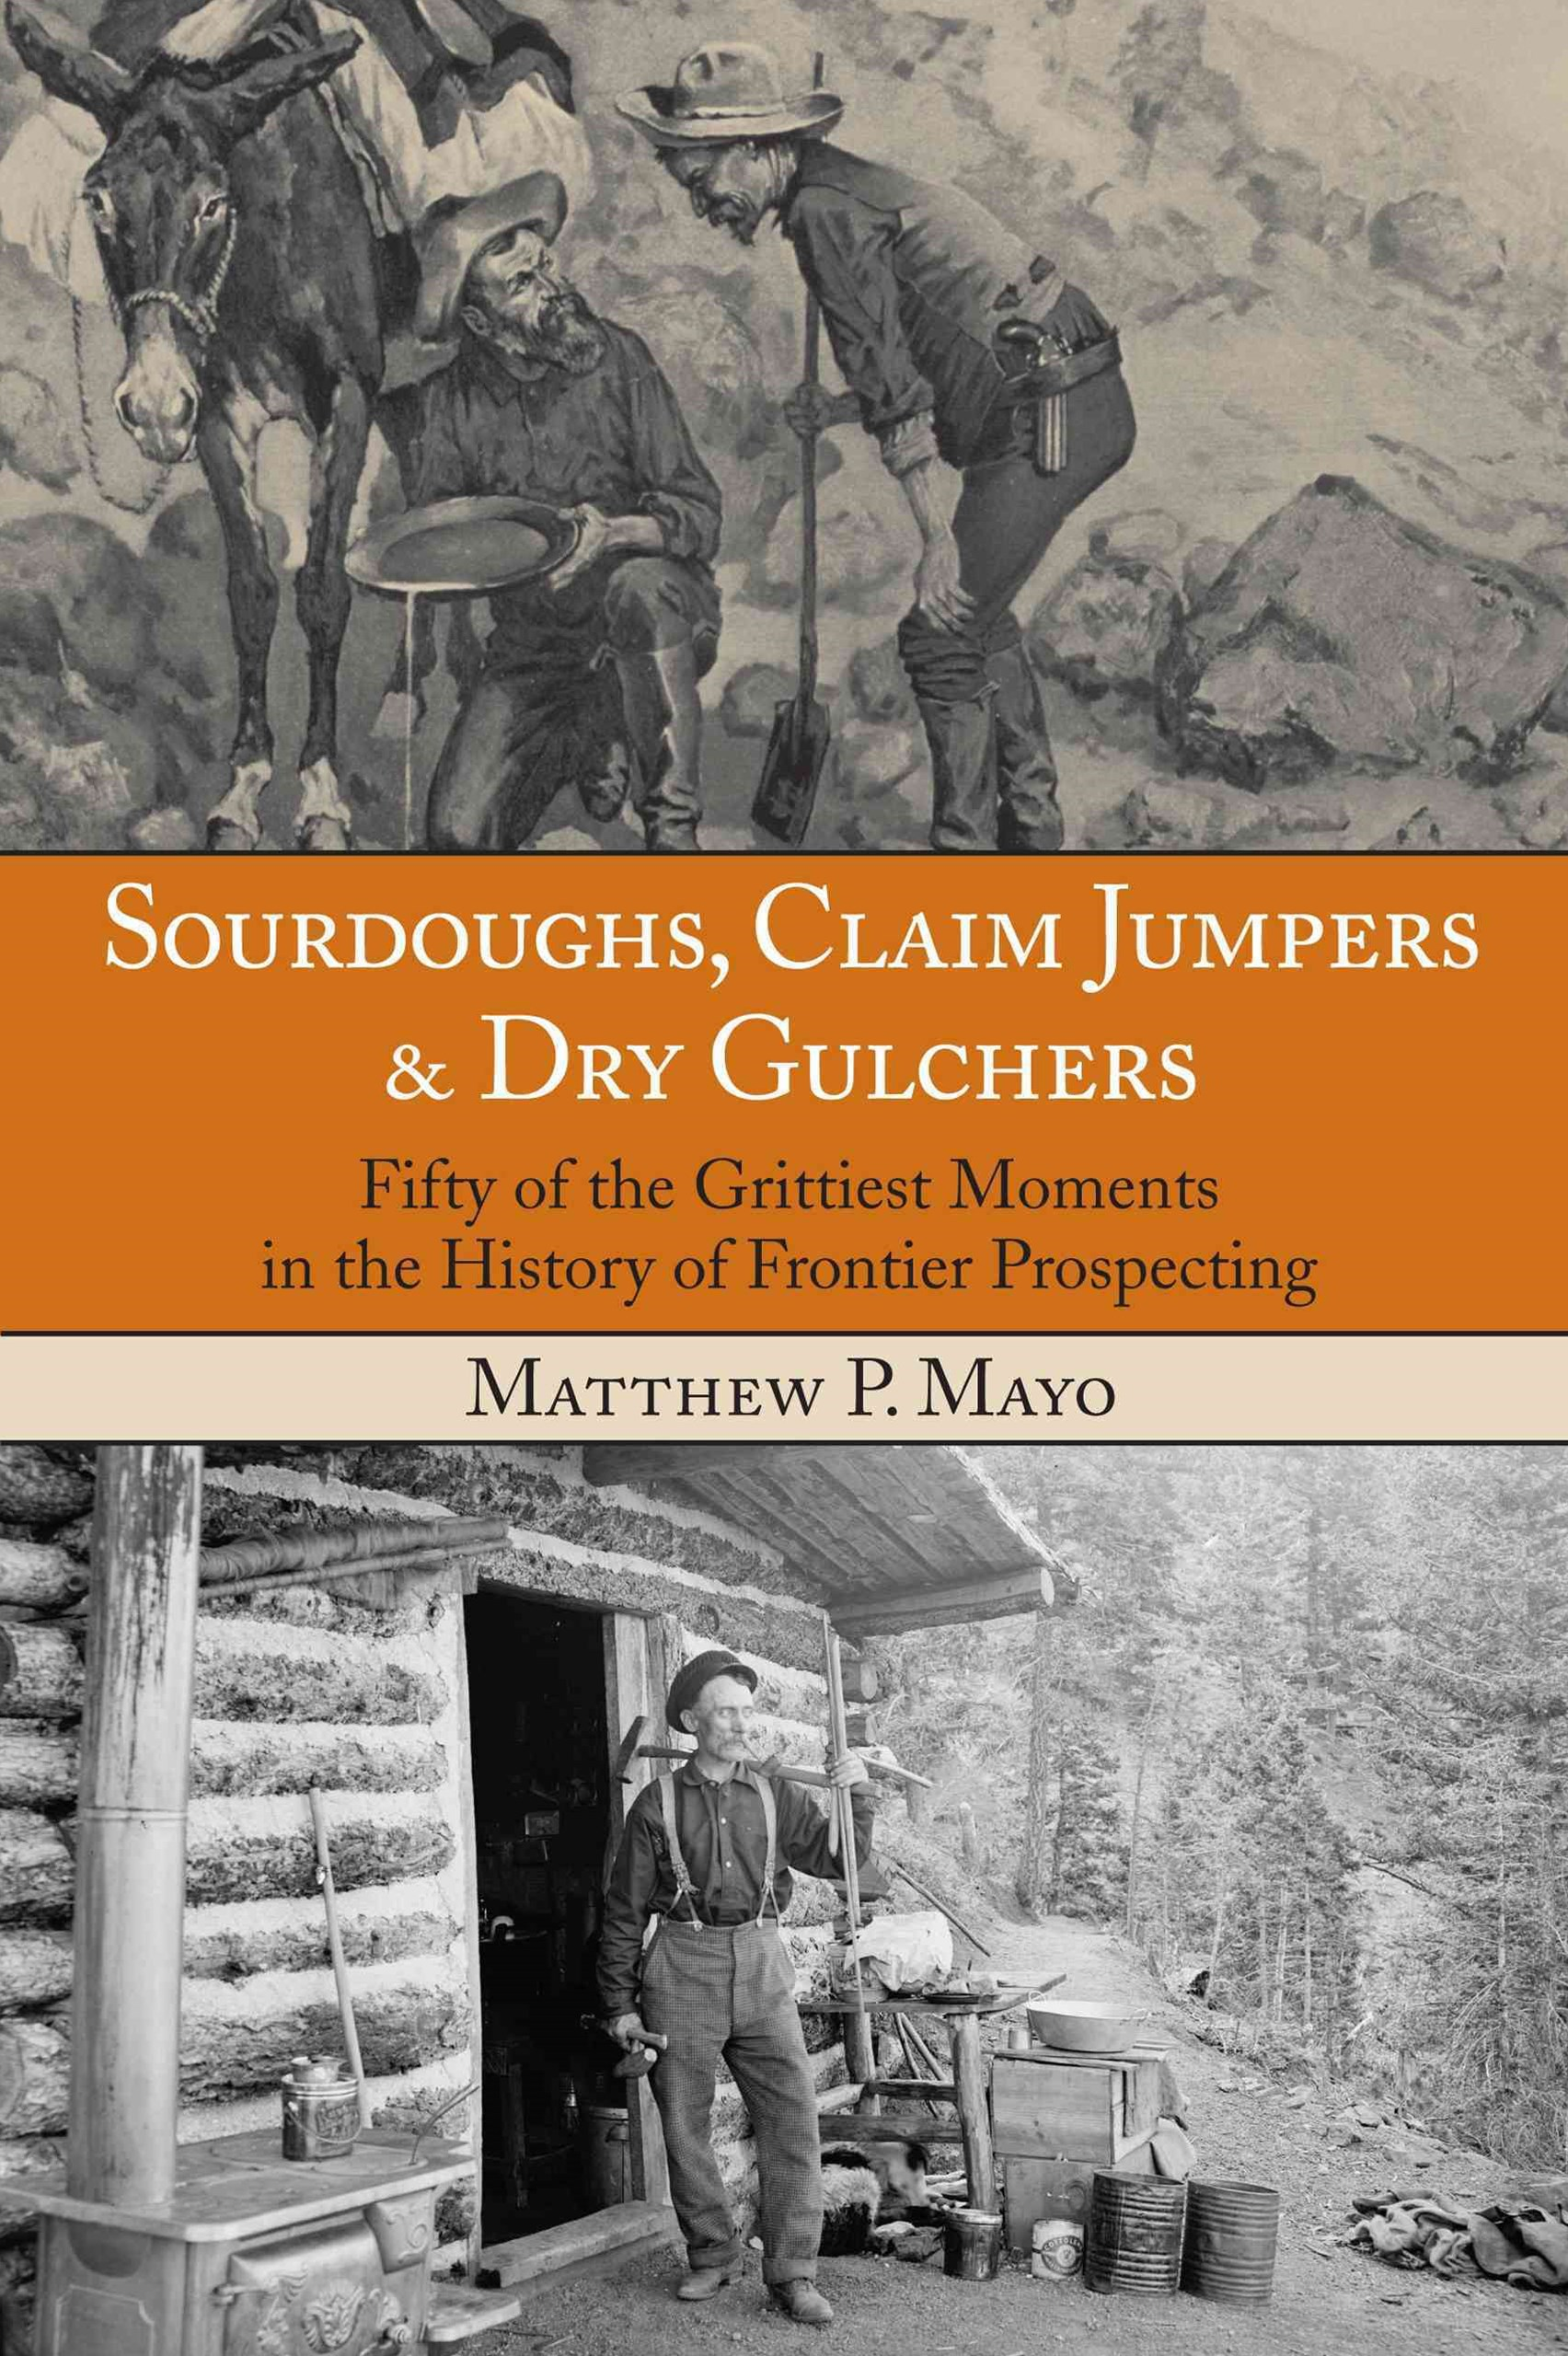 Sourdoughs, Claim Jumpers and Dry Gulchers